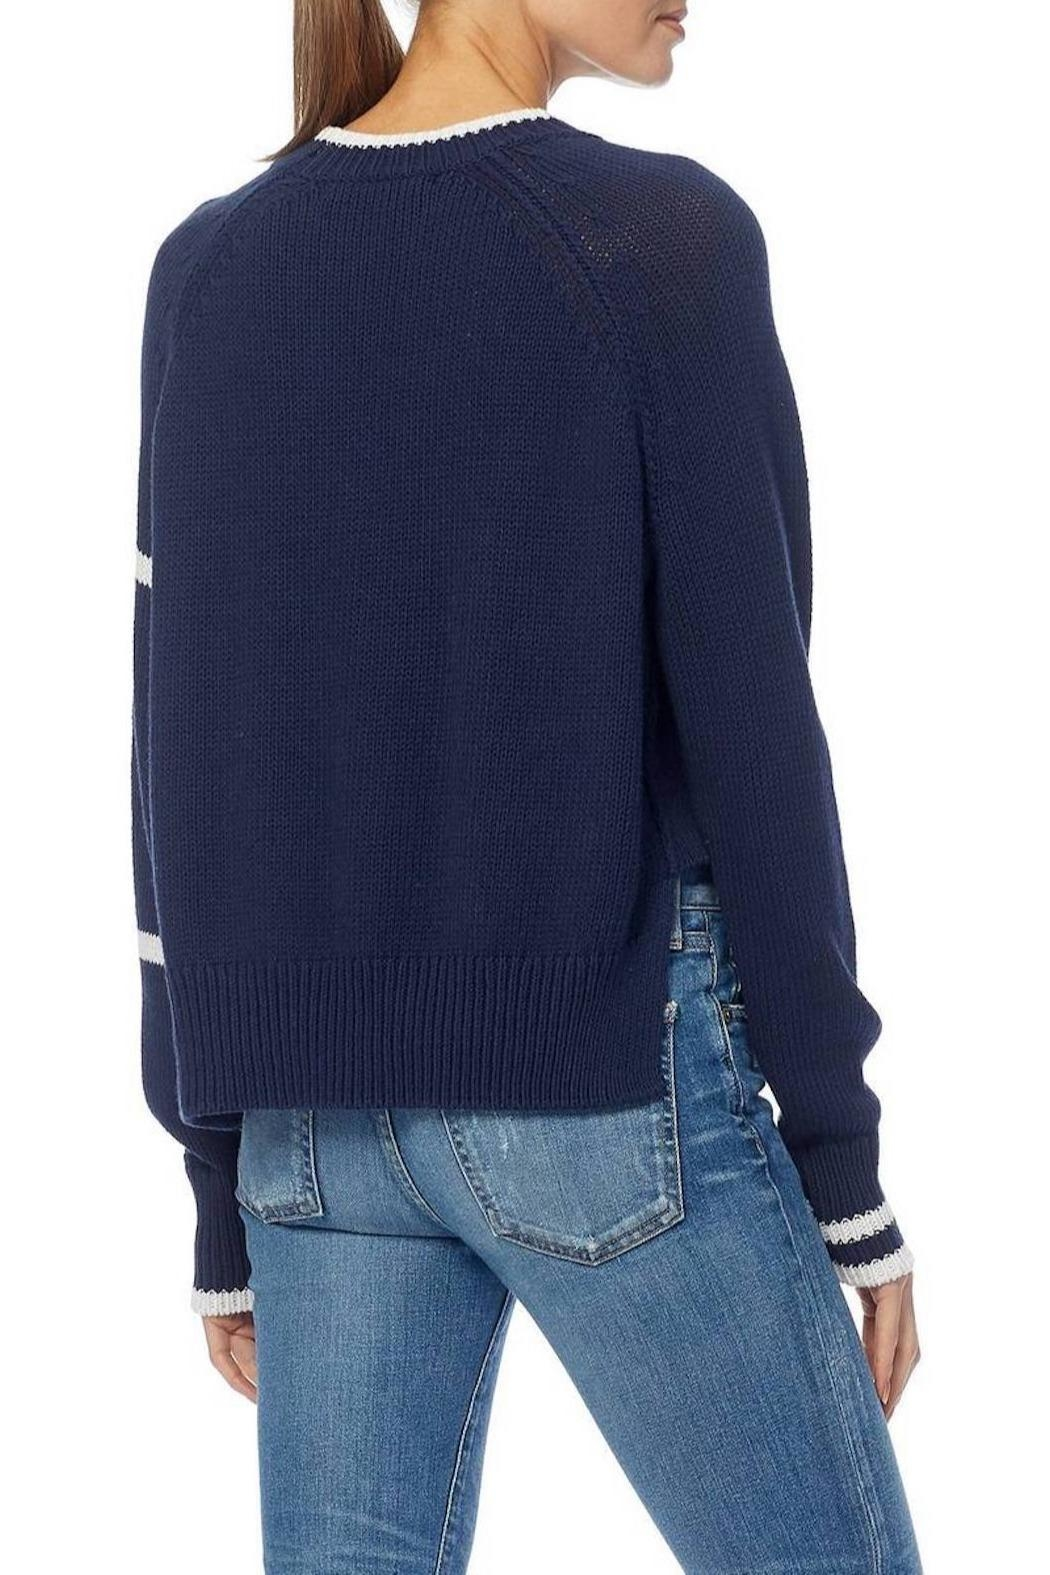 360 Cashmere Brynn Sweater - Side Cropped Image